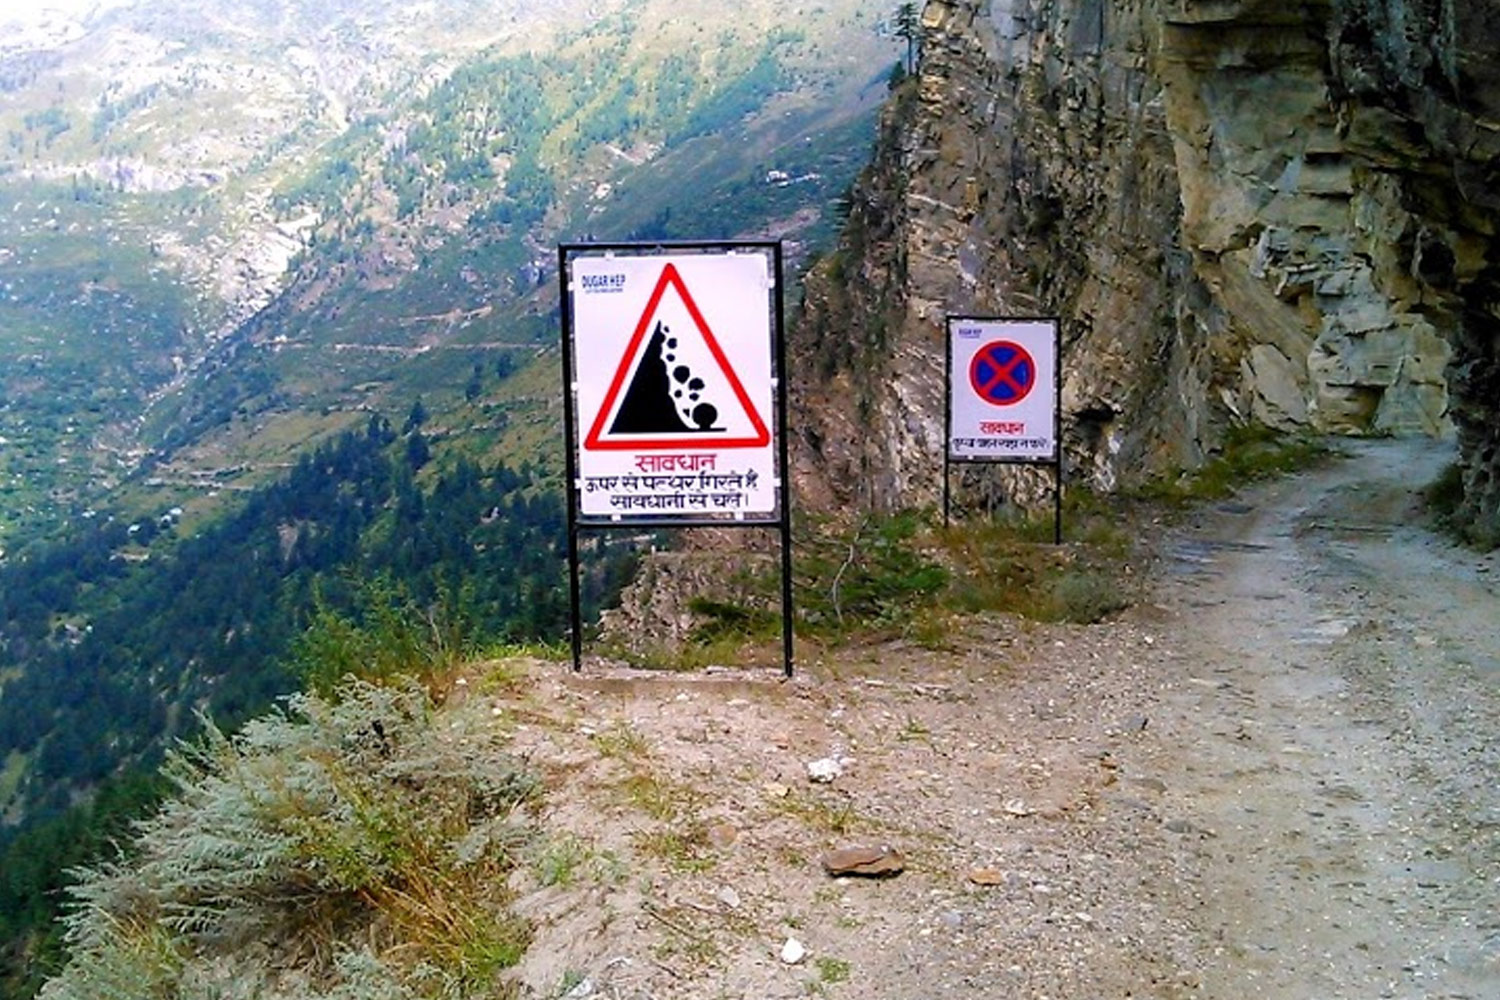 Roads in India Which Are As Deadly As Beautiful-Killar kishtwar road